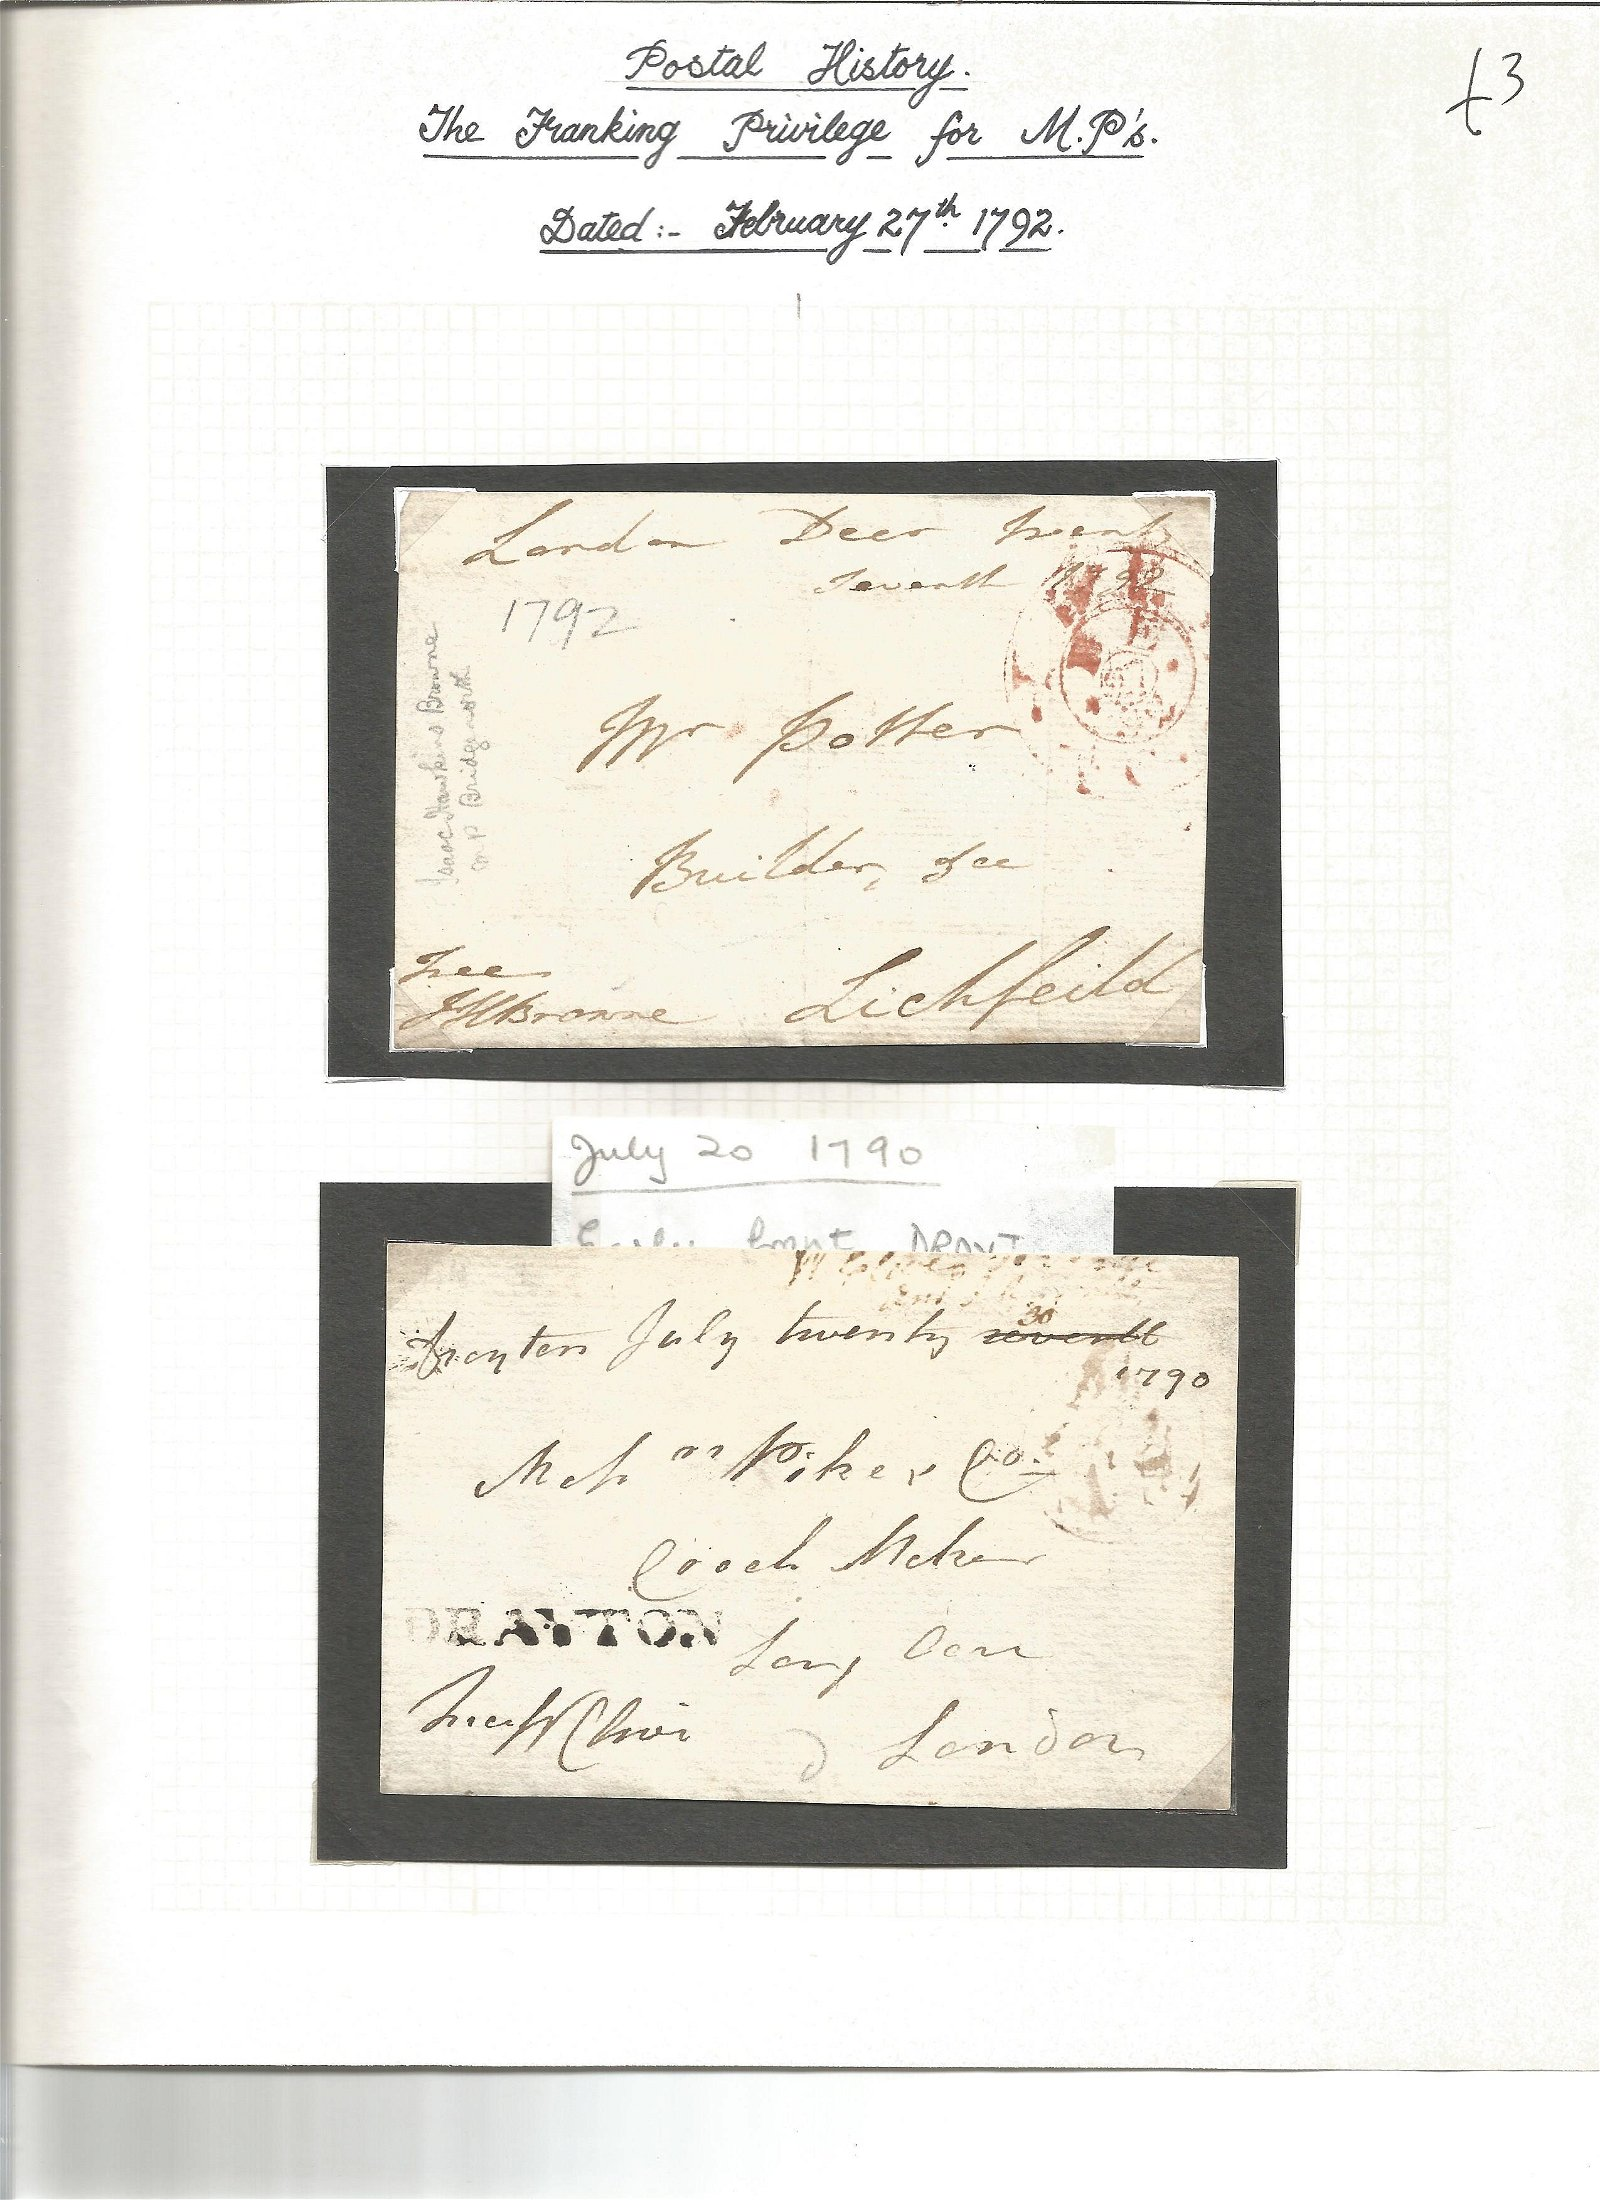 Postal History. Franking privilege for MP's dated